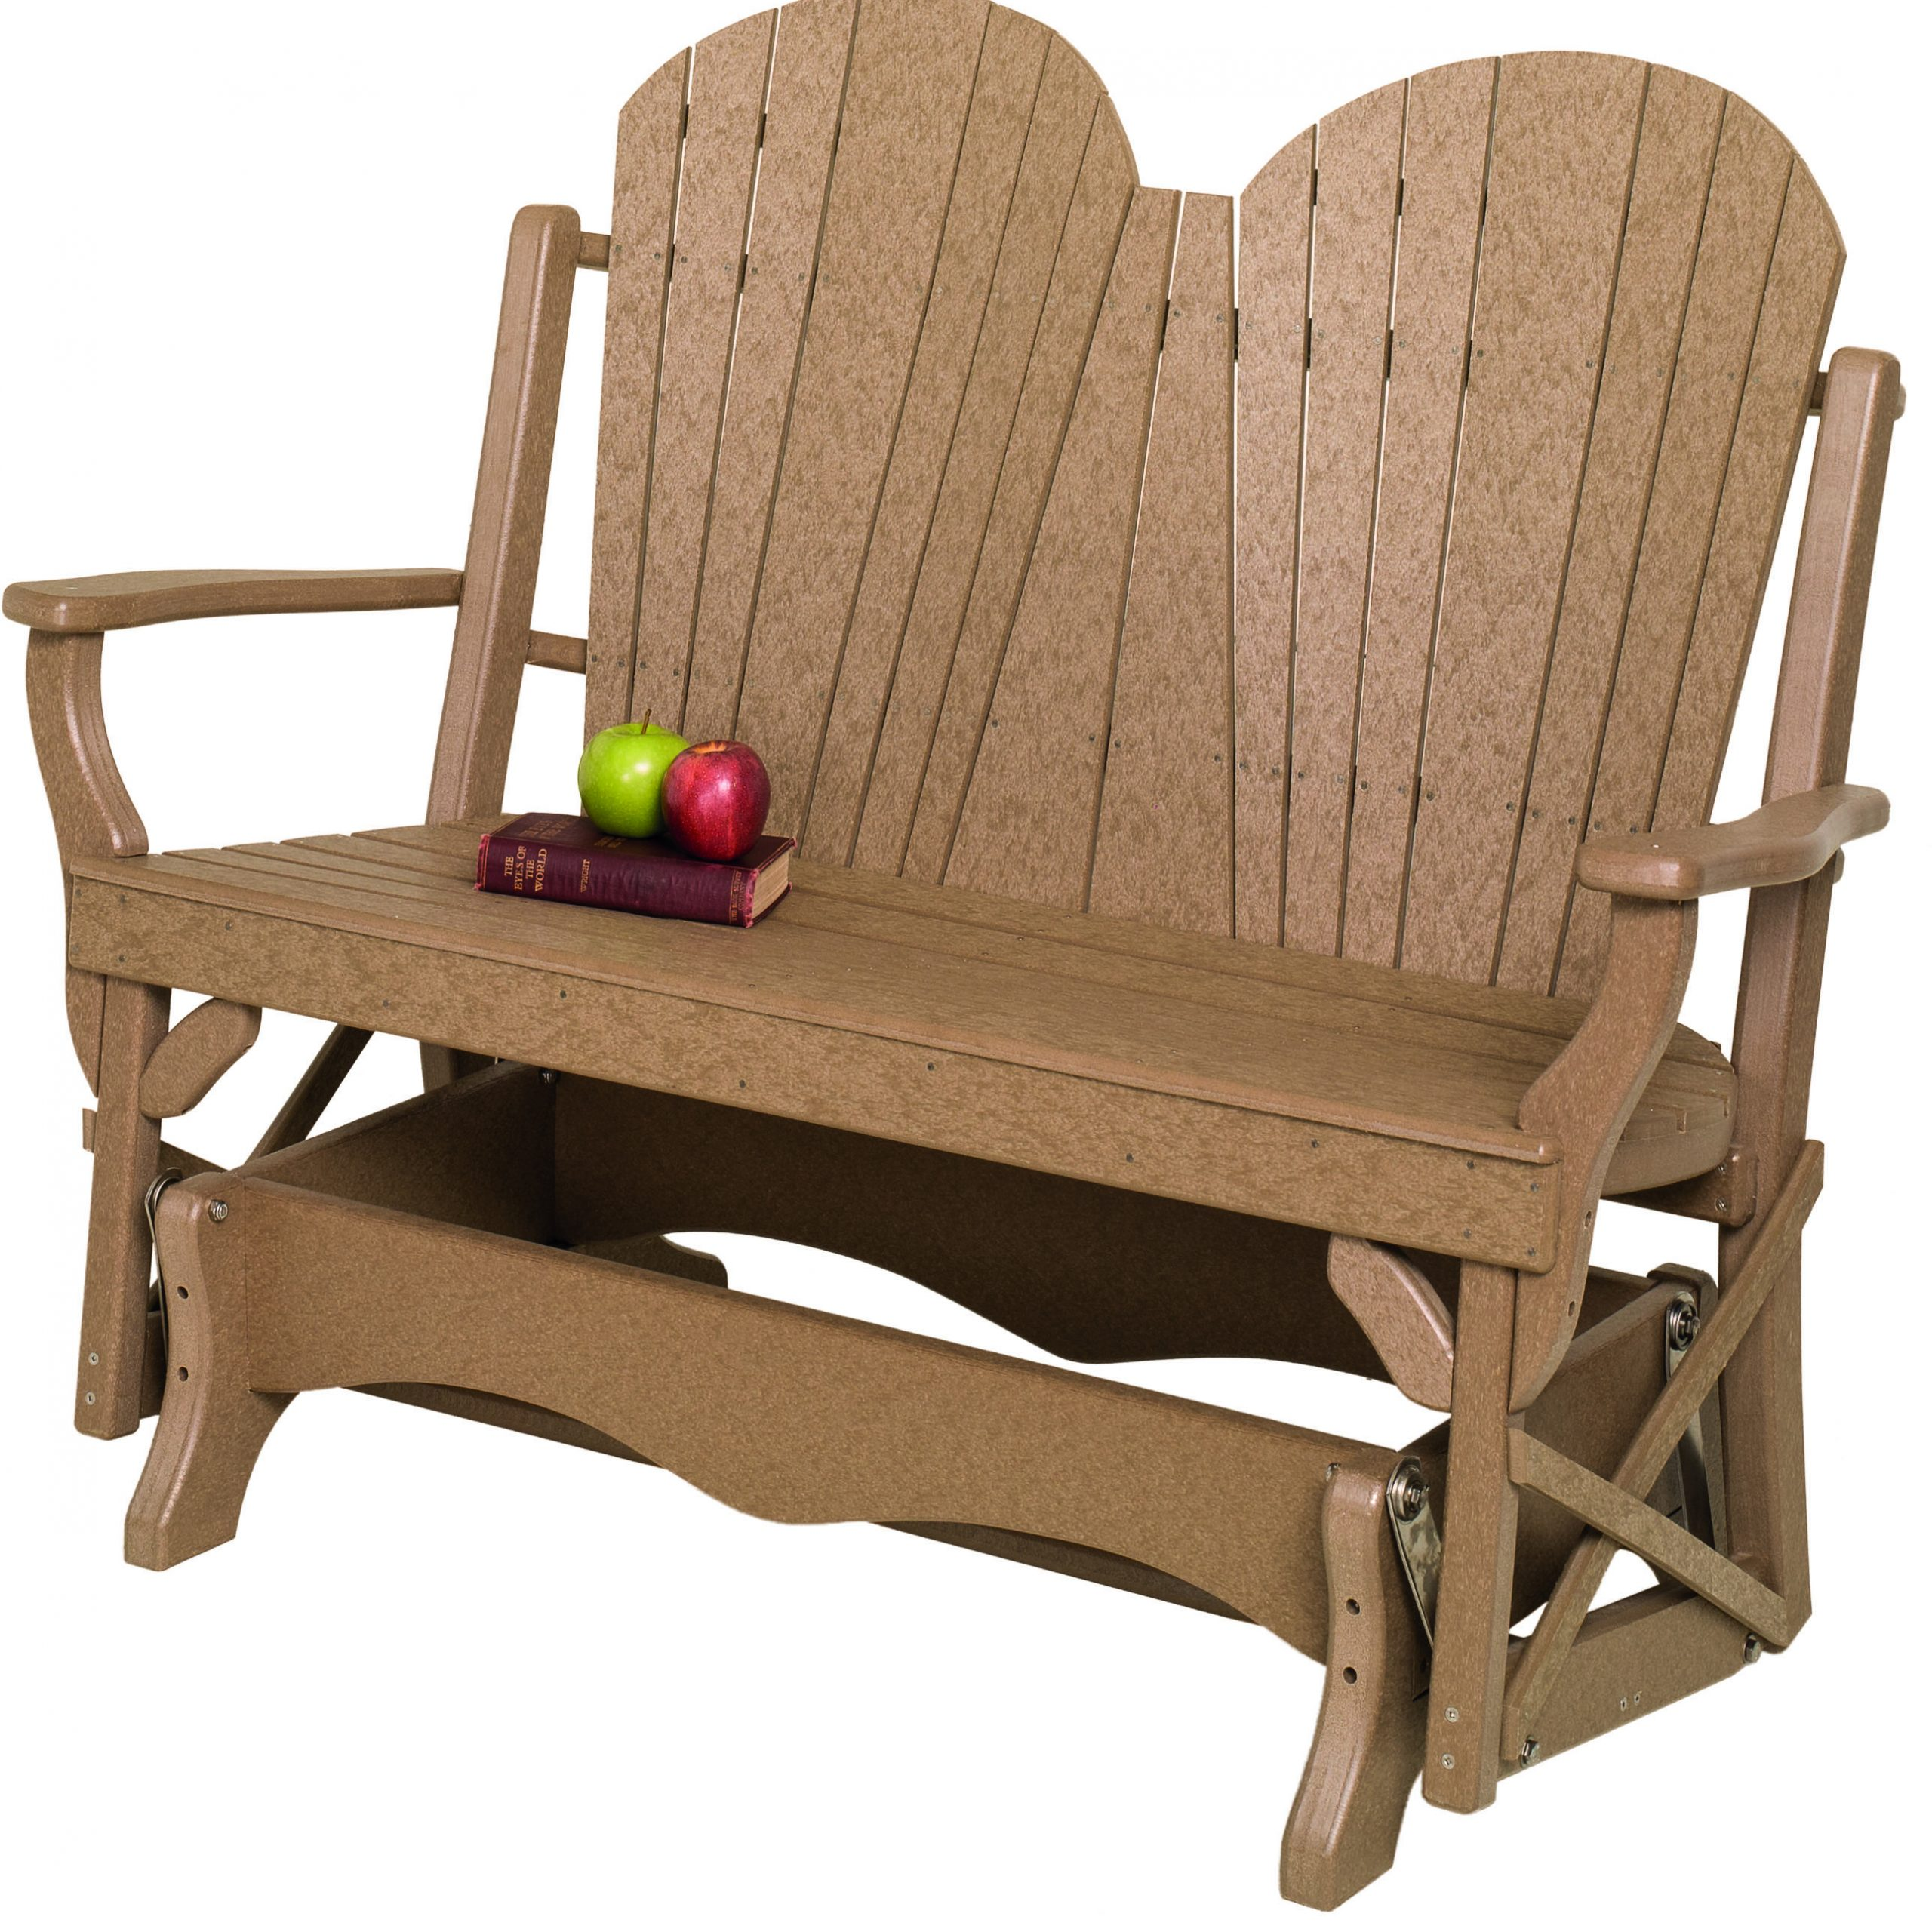 Fanback Recycled Poly Double Glider Regarding Fanback Glider Benches (View 20 of 25)